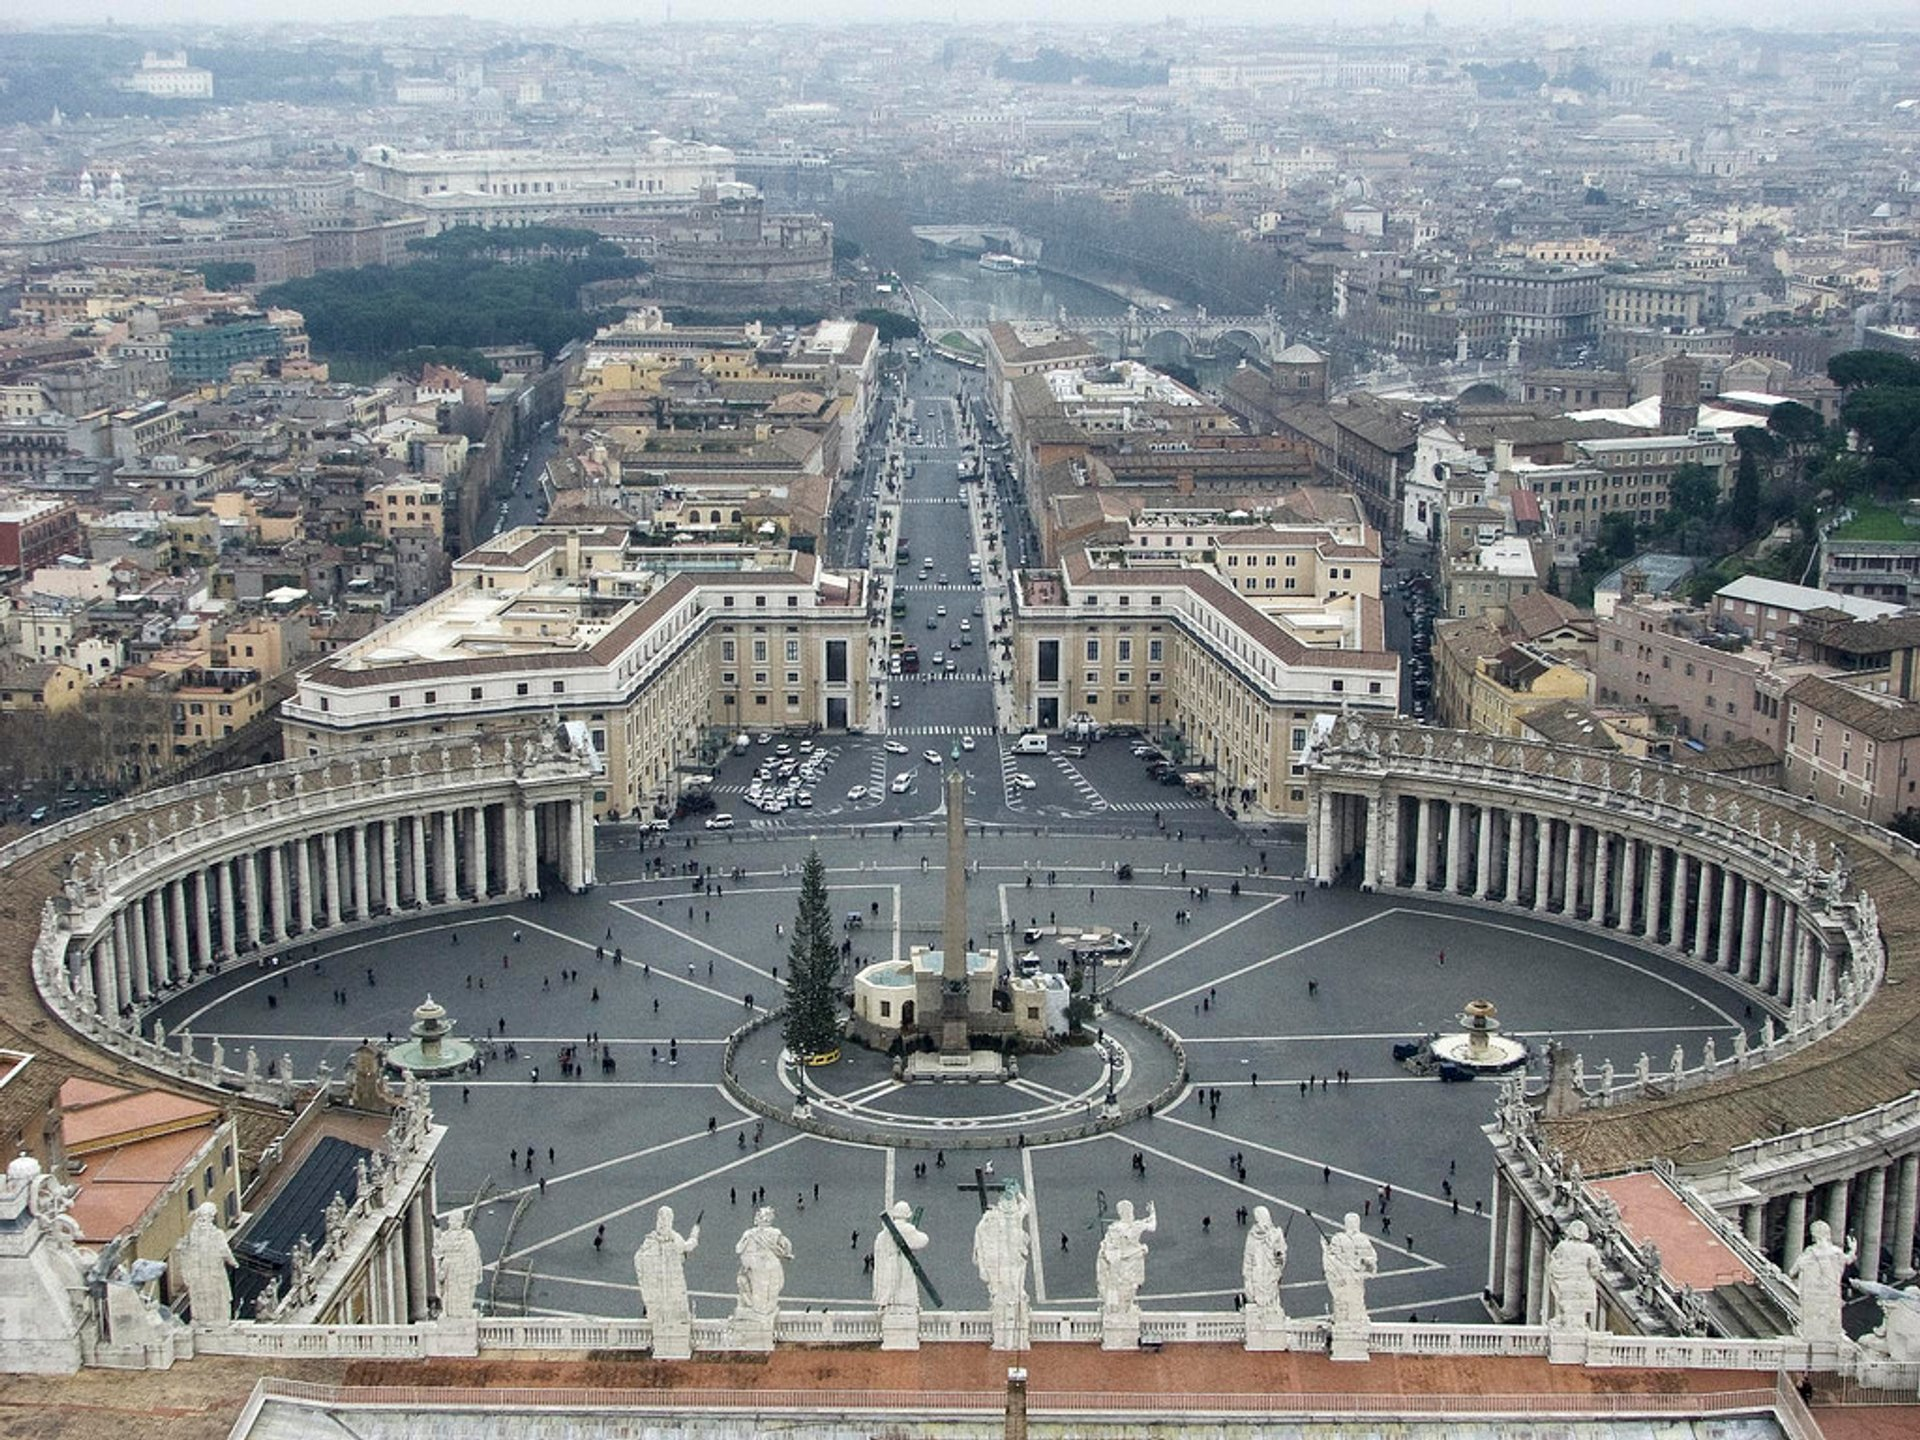 View over St Peter's Square 2020